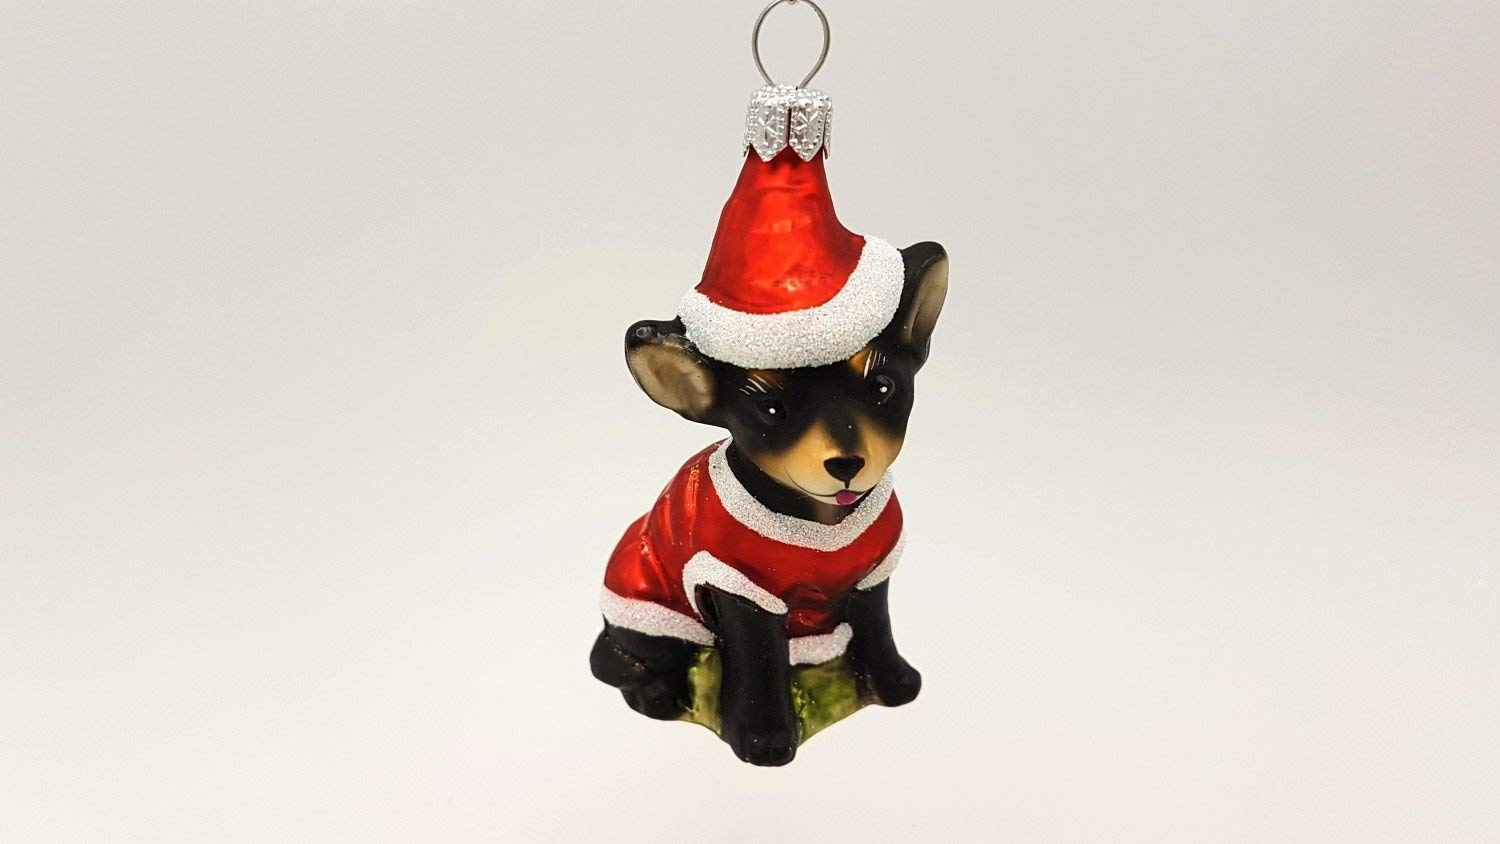 Hanco-Design-Christmas-Tree-Decoration-Chihuahua-Black-241903-1-Piece-Christmas-Decoration-Tree-Decoration-Christmas-Hanger